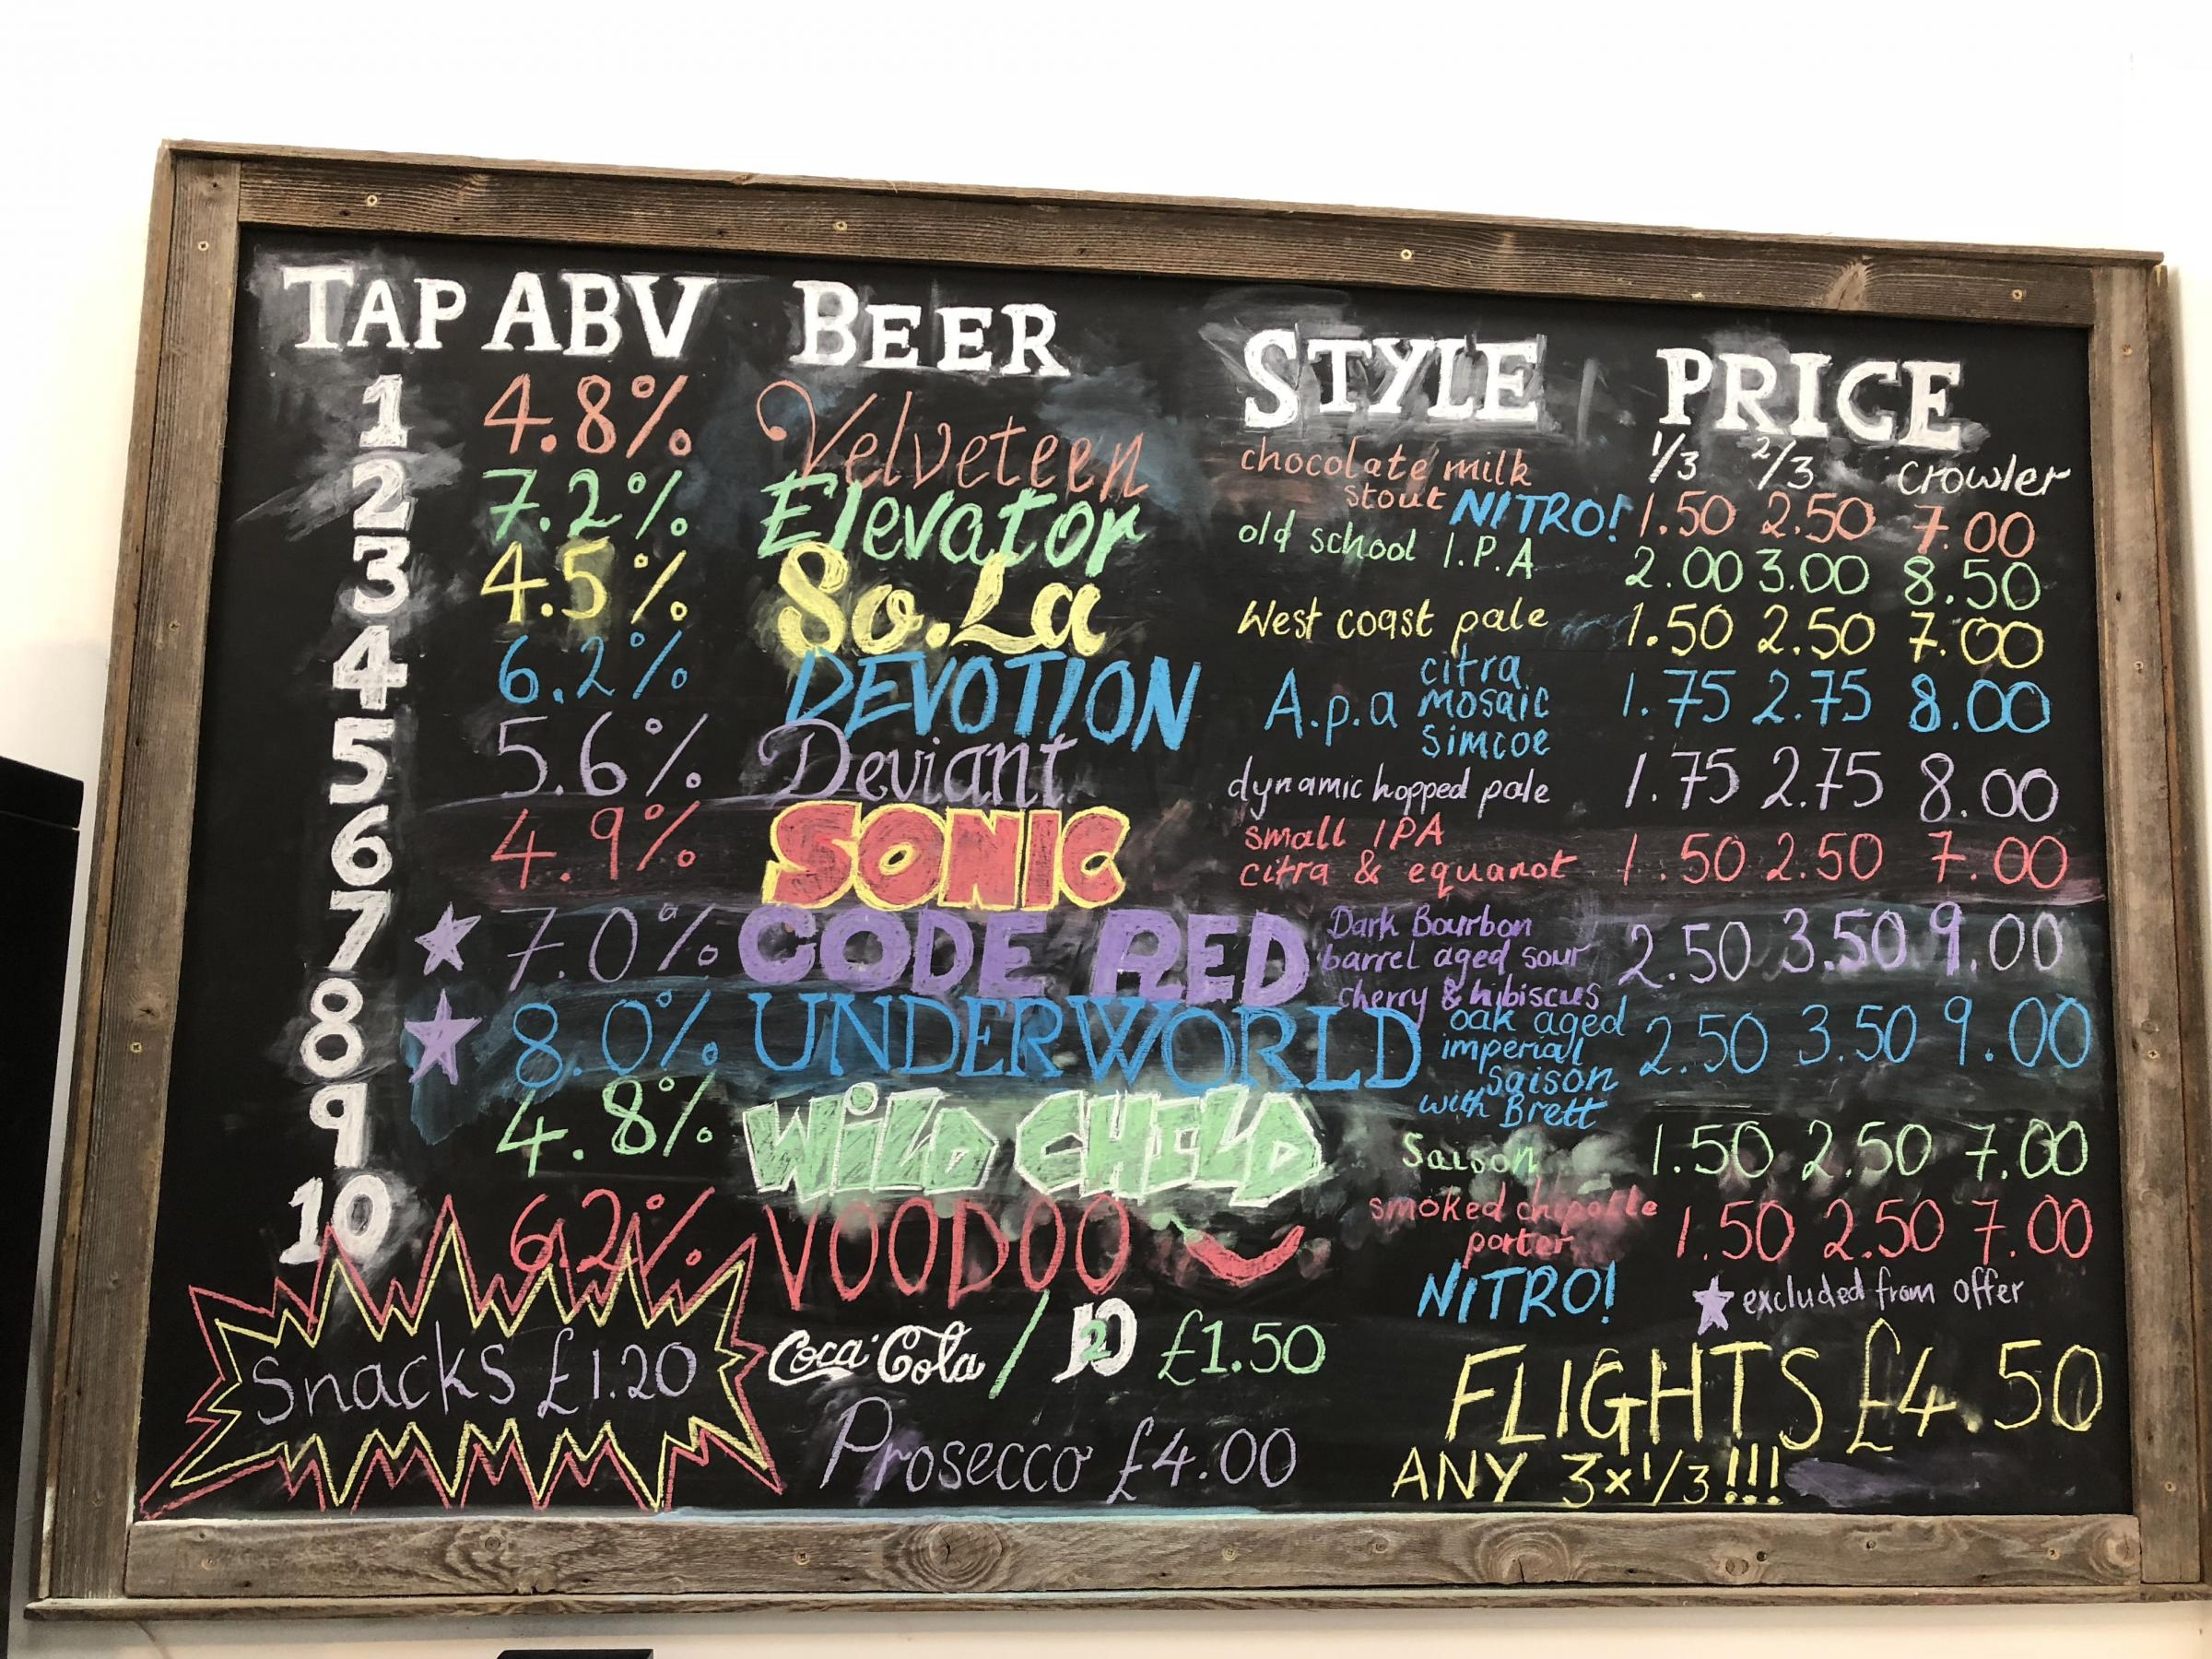 Beers on offer at Dark Revolution Brewery